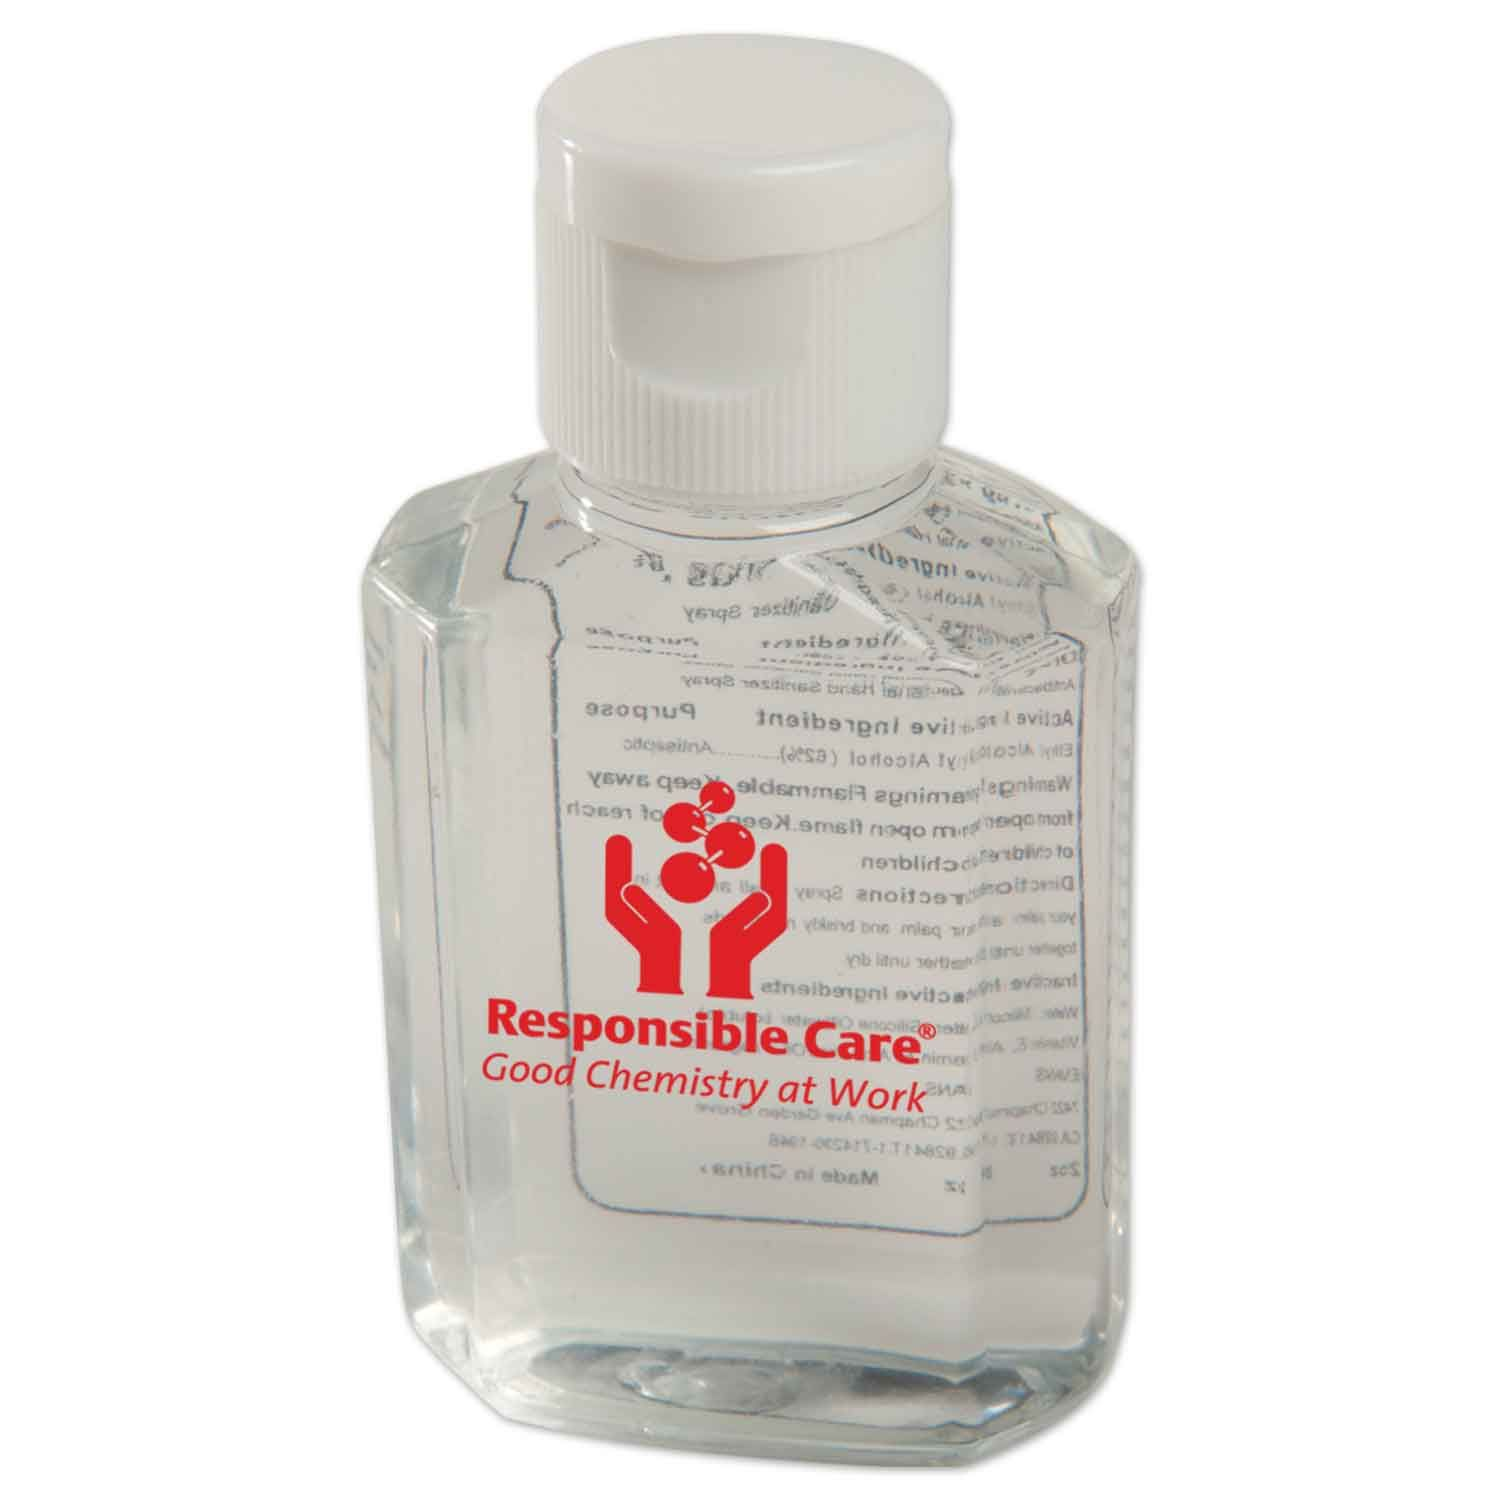 Bottle contains antibacterial gel to keep hands clean by killing bacteria and germs. Useful gift for school administrators and tradeshow personnel. The 3672 2 OZ. Protect™ Antibacterial Gel #PromotionalProduct is available in Full Color Process at https://www.evans-mfg.com.